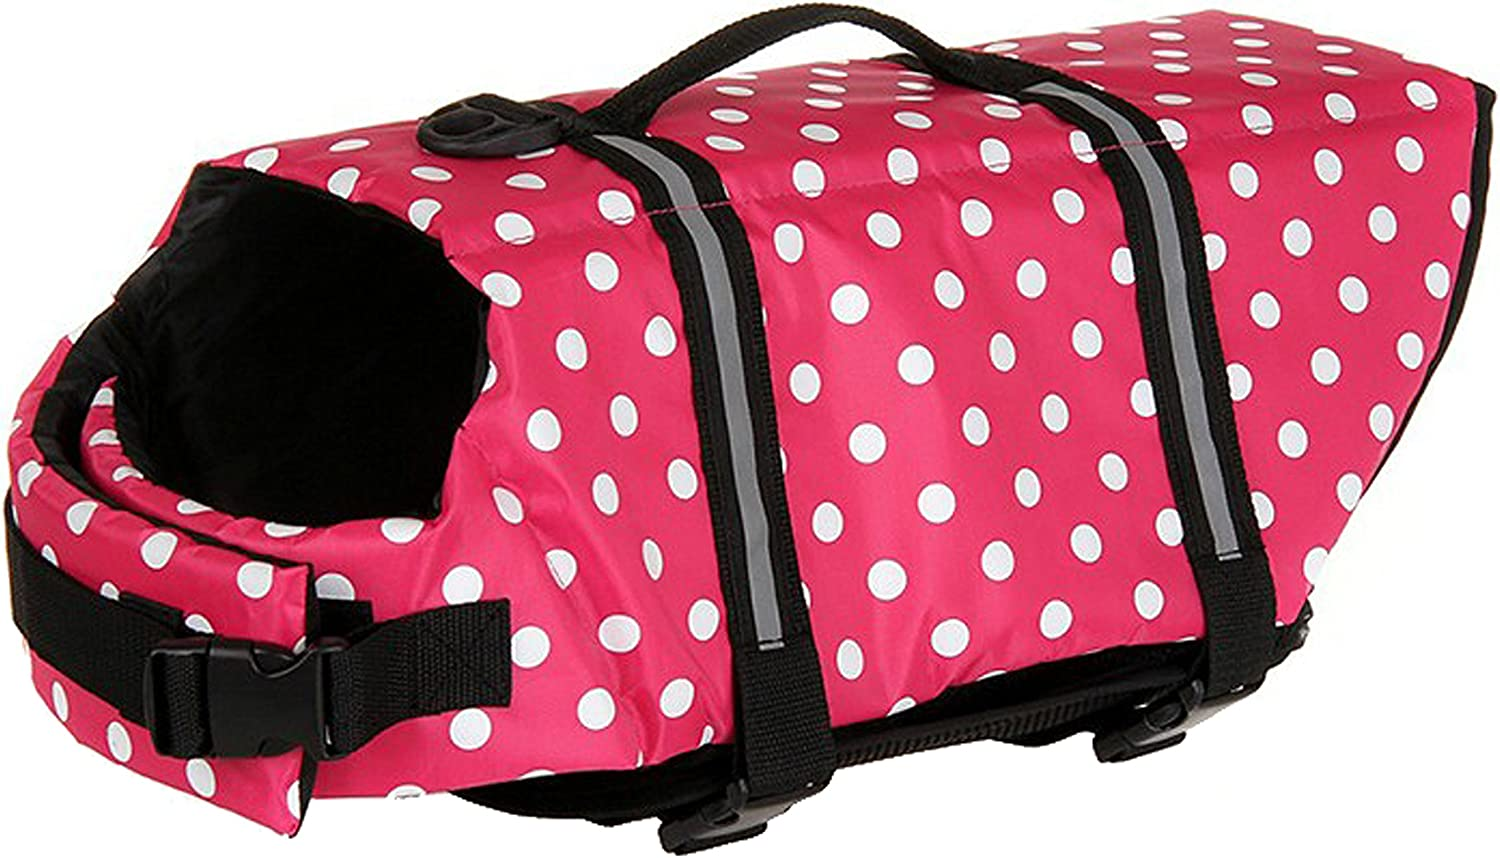 Astage Pet Supplies Doggy Lifejackets Swimming Support for Dog PinkDot XL